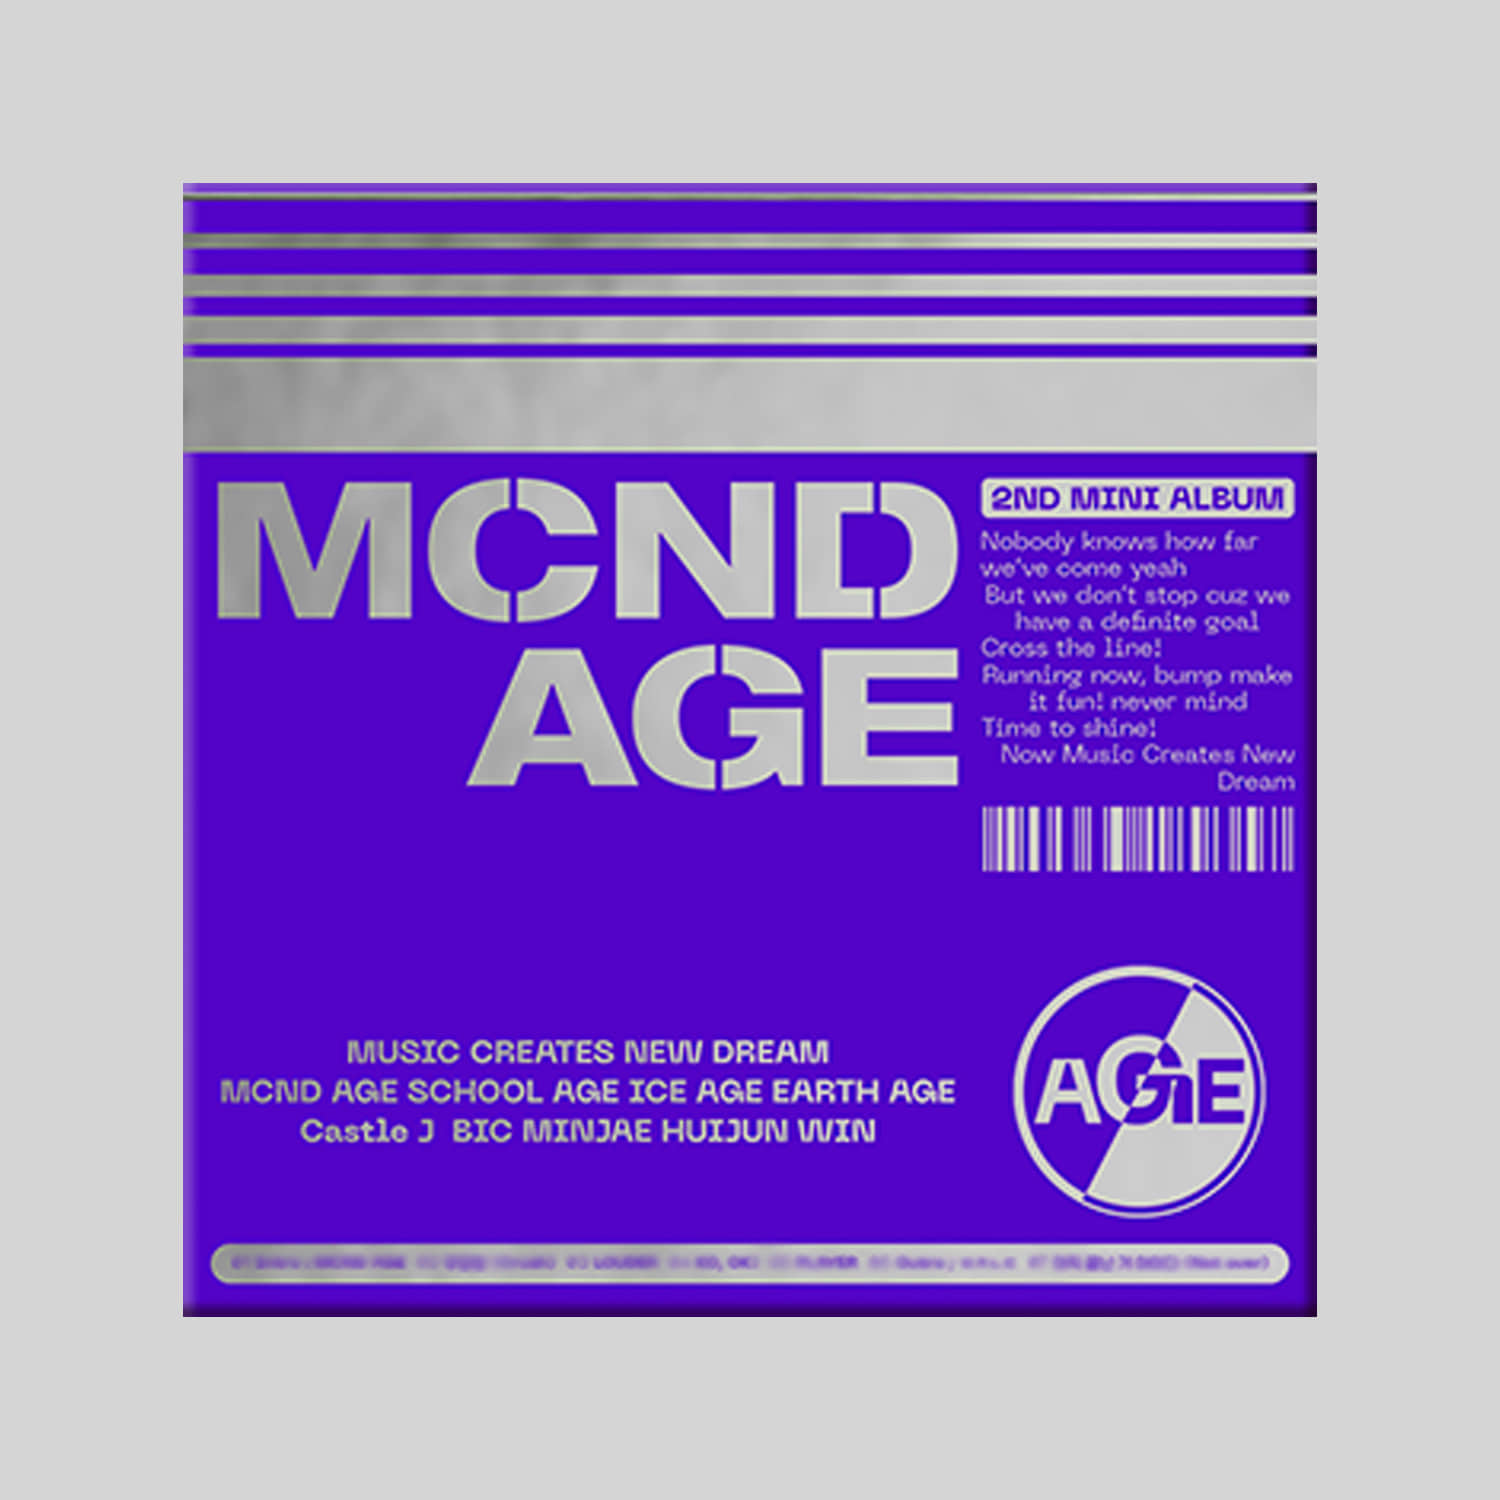 MCND - 2ND MINI ALBUM [MCND AGE] (GET Ver.)케이팝스토어(kpop store)